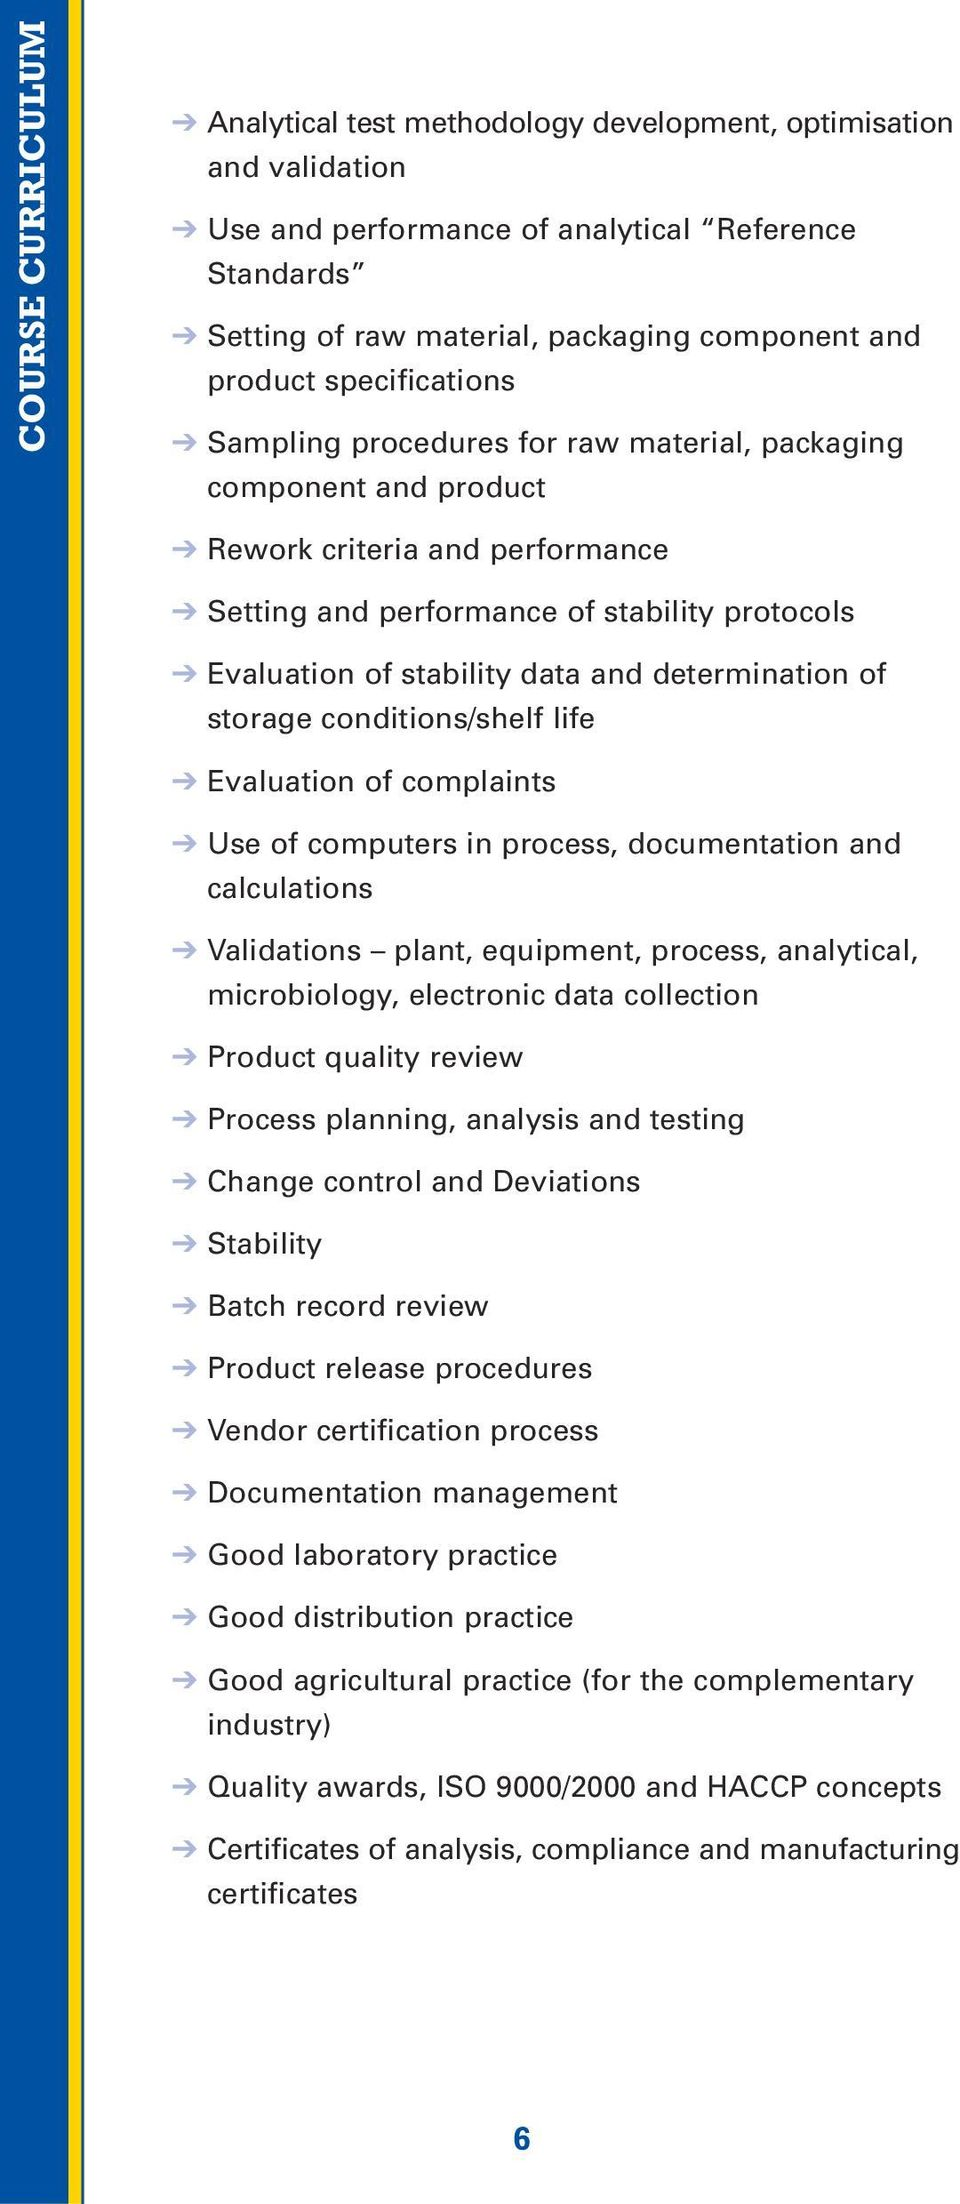 determination of storage conditions/shelf life Evaluation of complaints Use of computers in process, documentation and calculations Validations plant, equipment, process, analytical, microbiology,